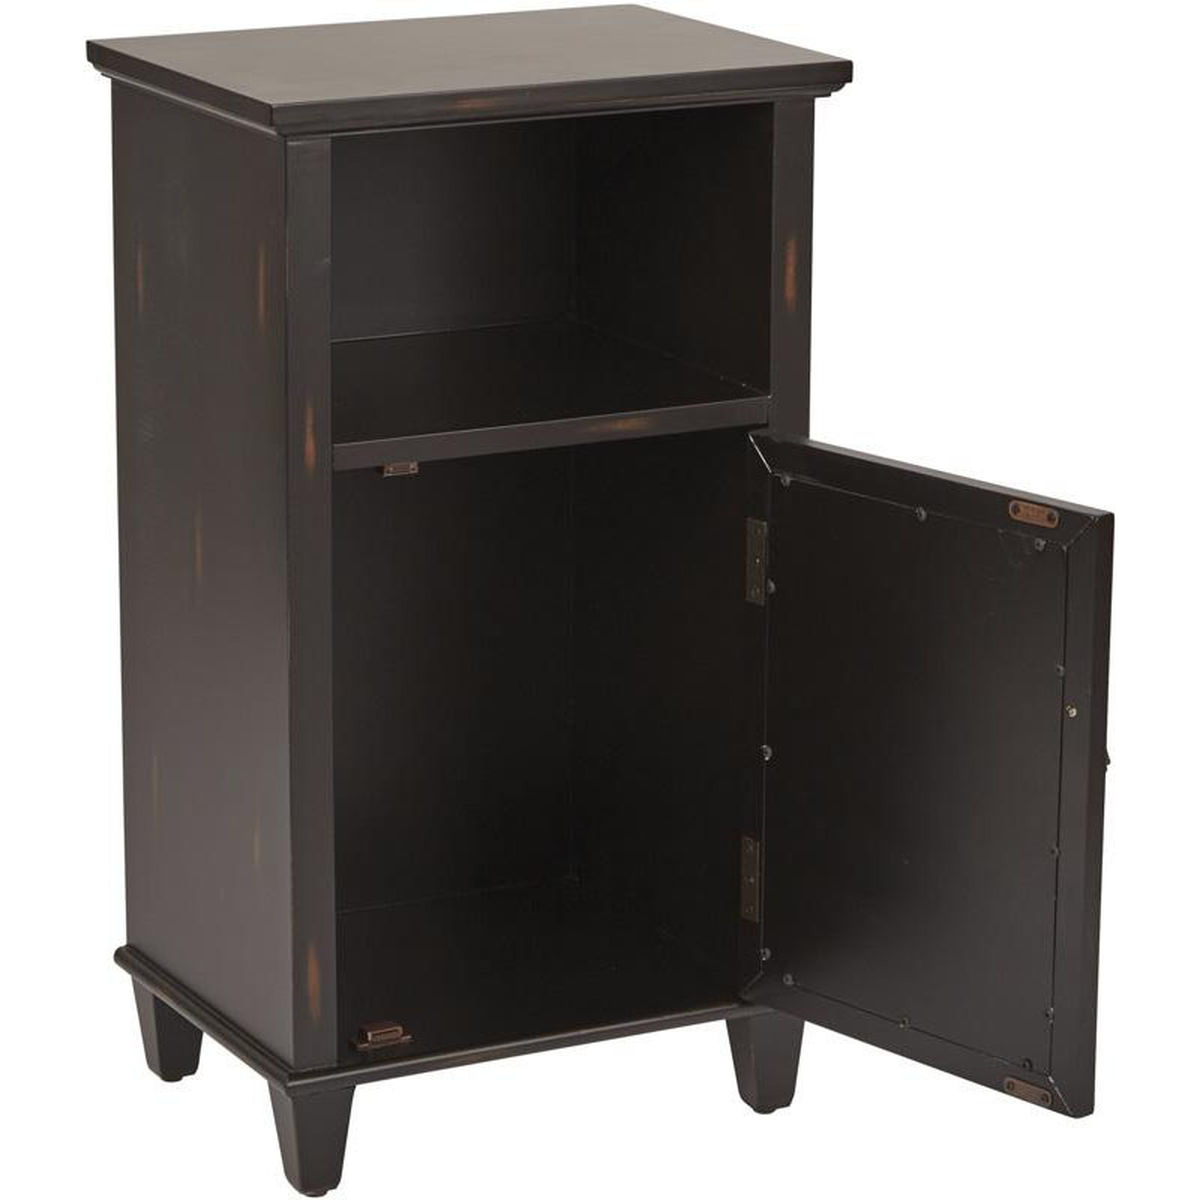 medina black accent table bizchair office star products painted tables chests our inspired bassett hand antique now pedestal legs gold round end quality lamps white contemporary